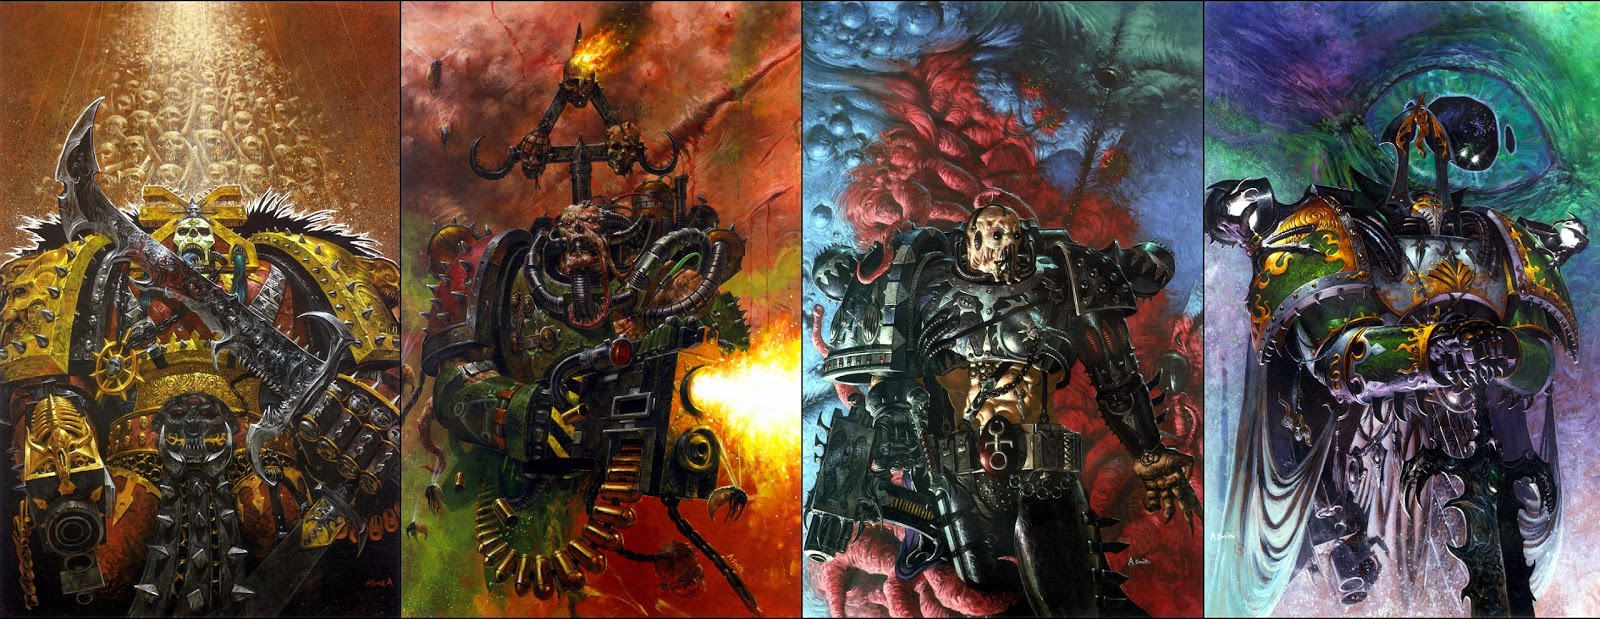 Tzeentch, Khorne, Magnus and Angron; What do they have in ... Warhammer 40k Good Chaos Gods